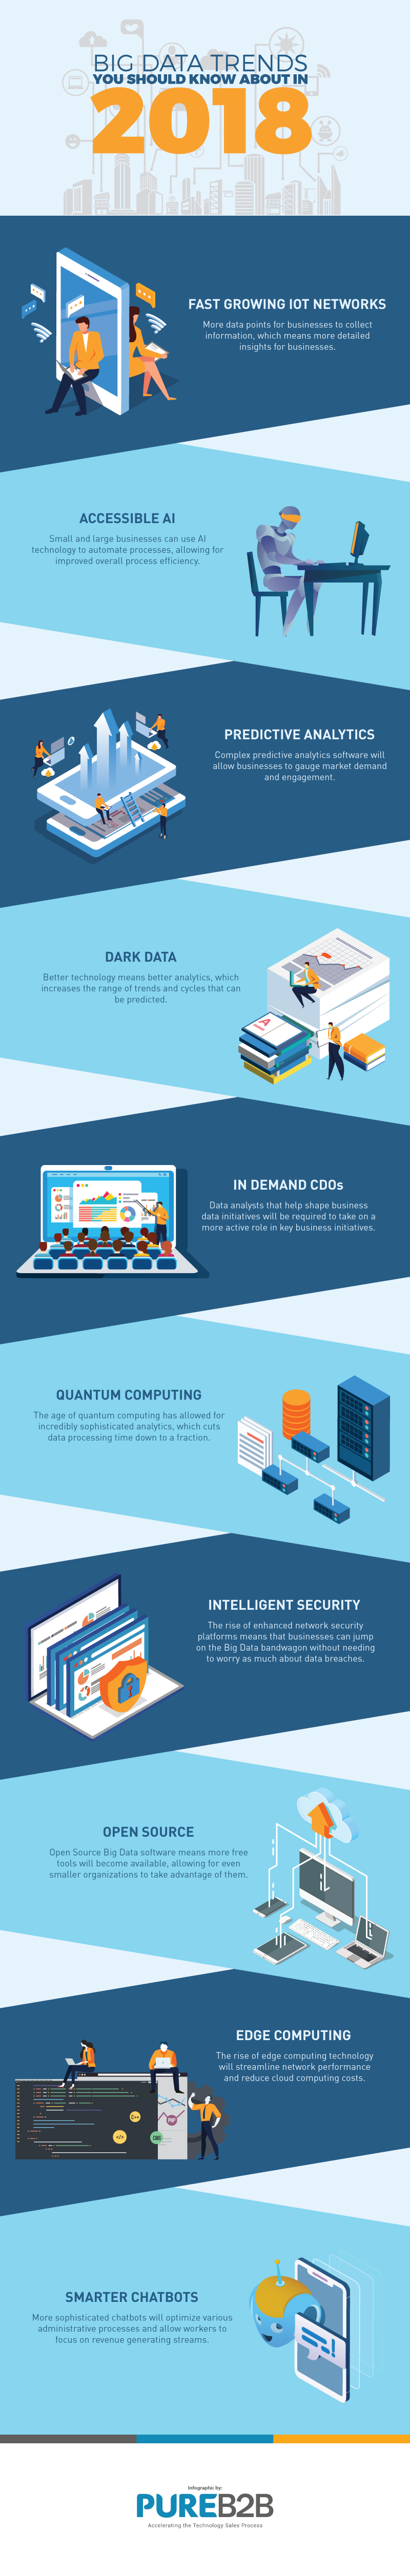 Big-Data-Trends-2018-Infographic